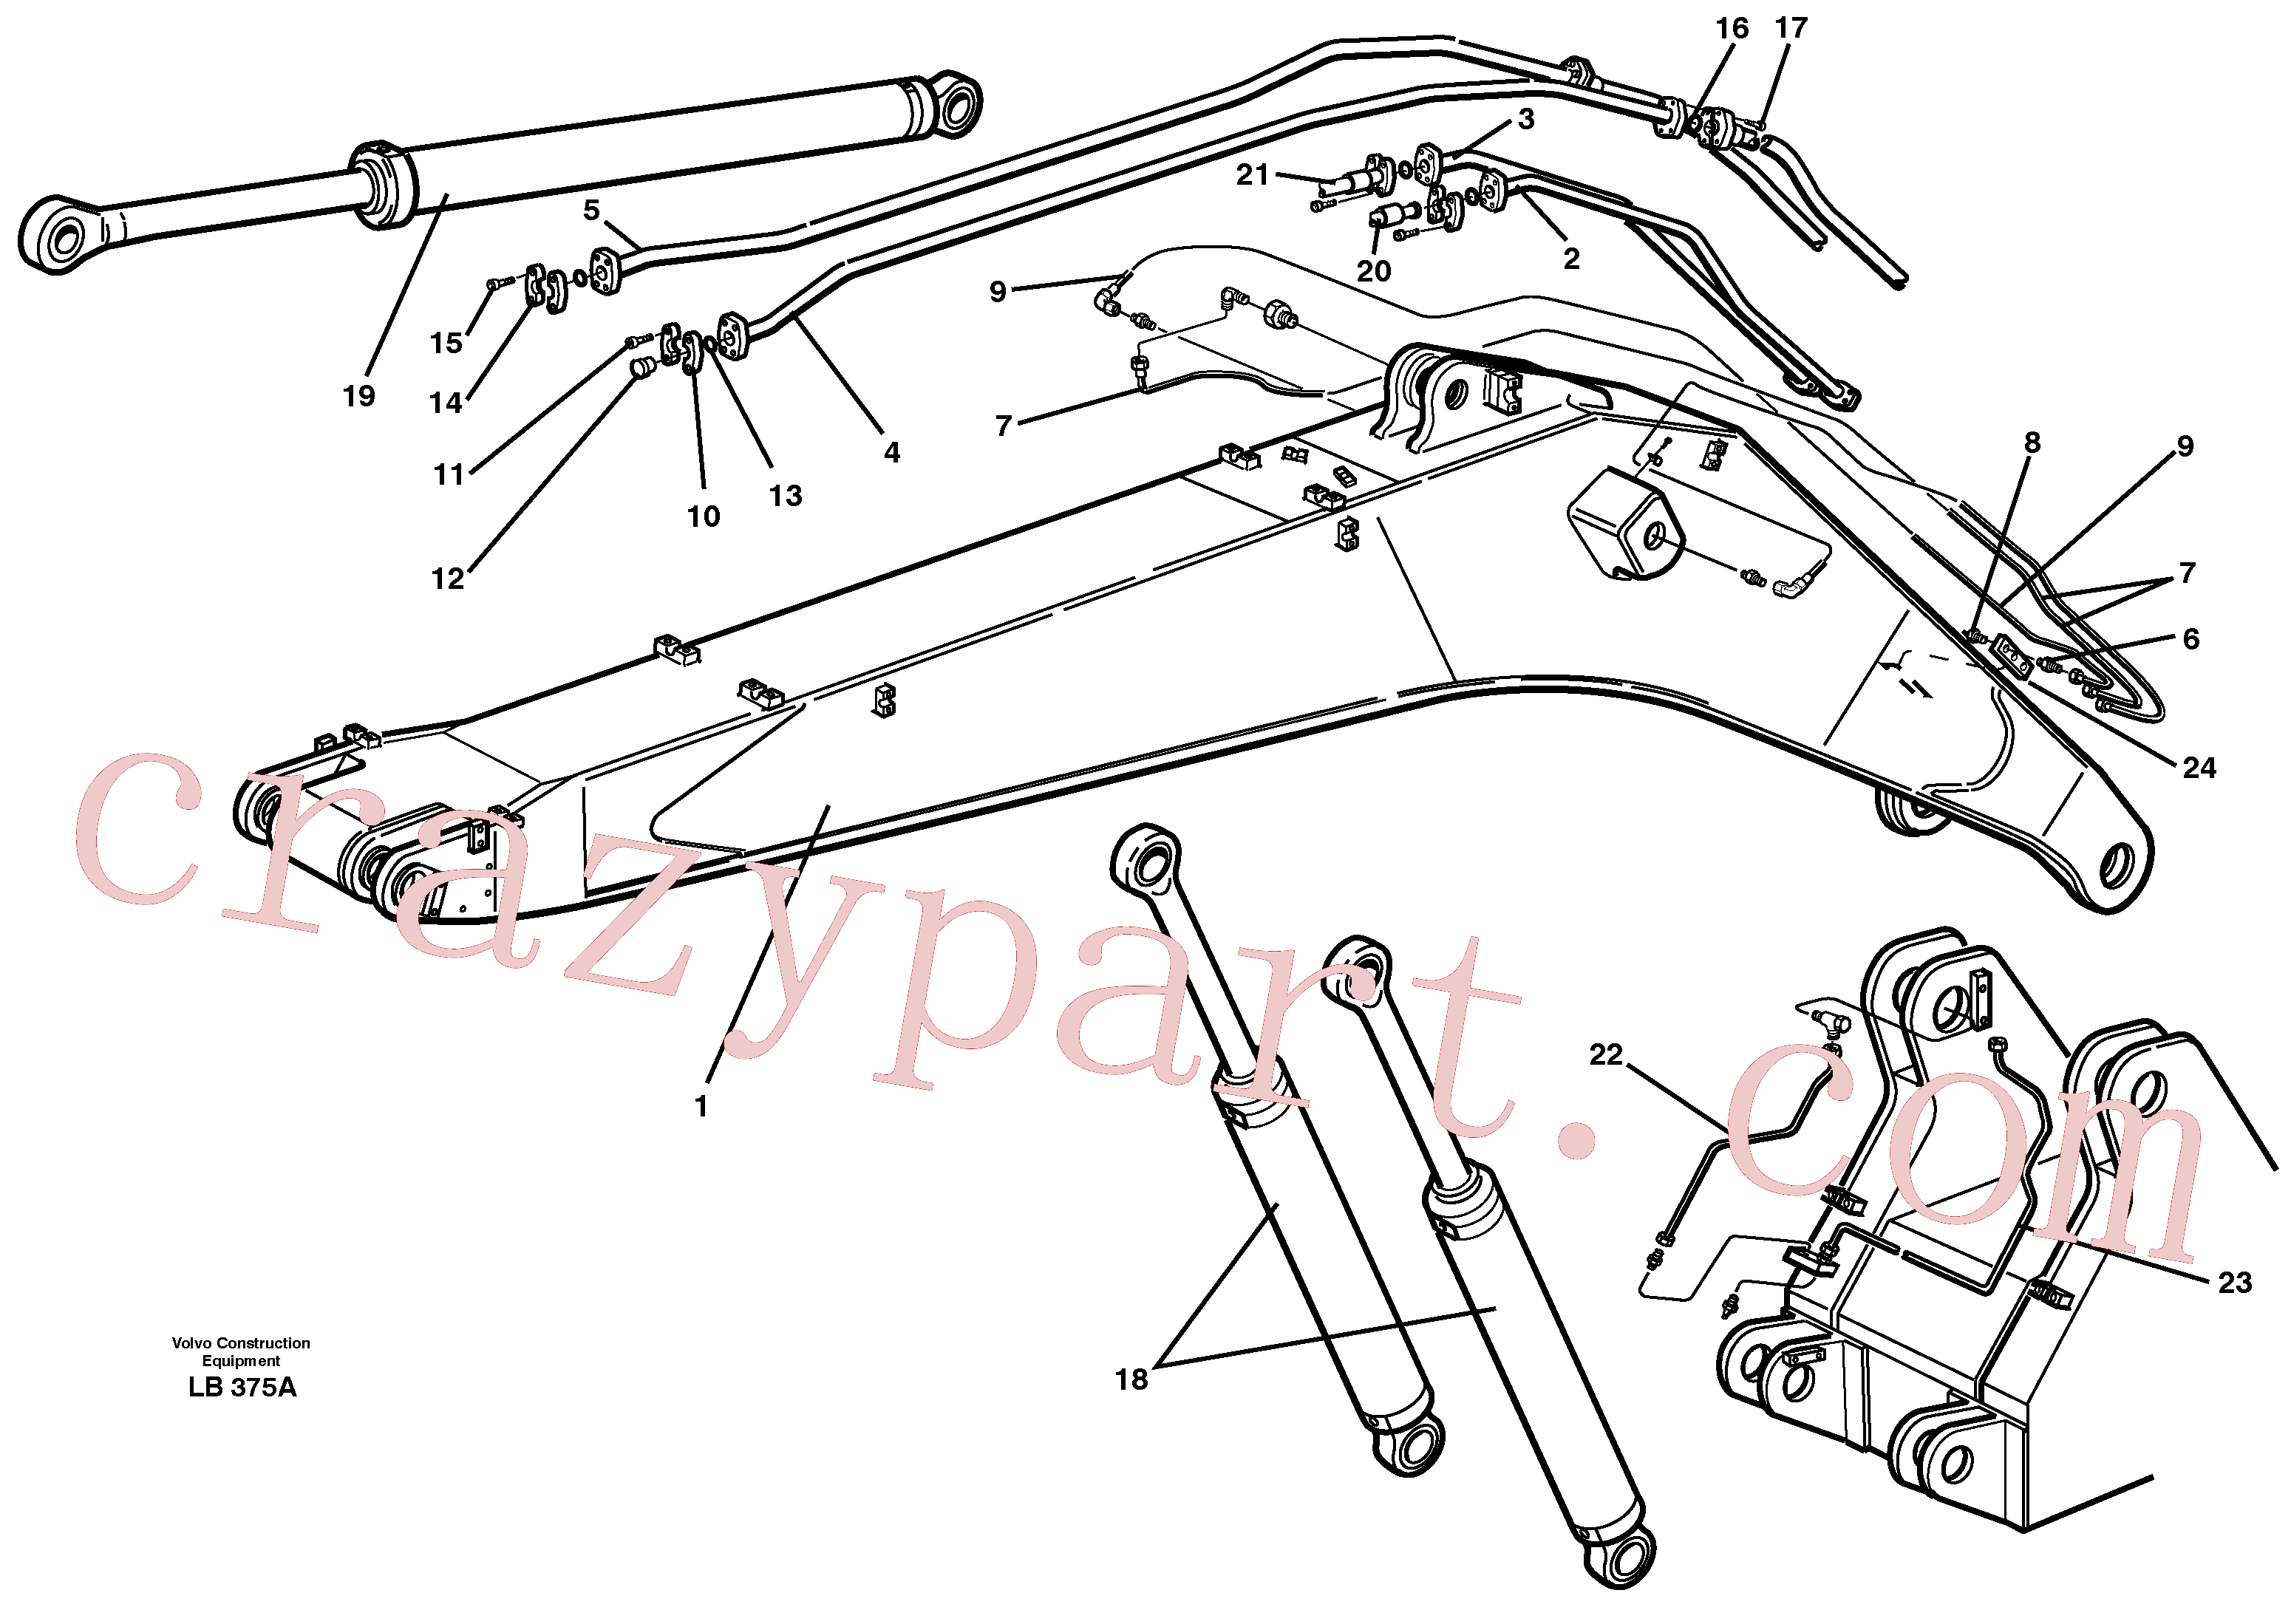 VOE14239793 for Volvo Tubes, assembly, backhoe boom(LB375A assembly)